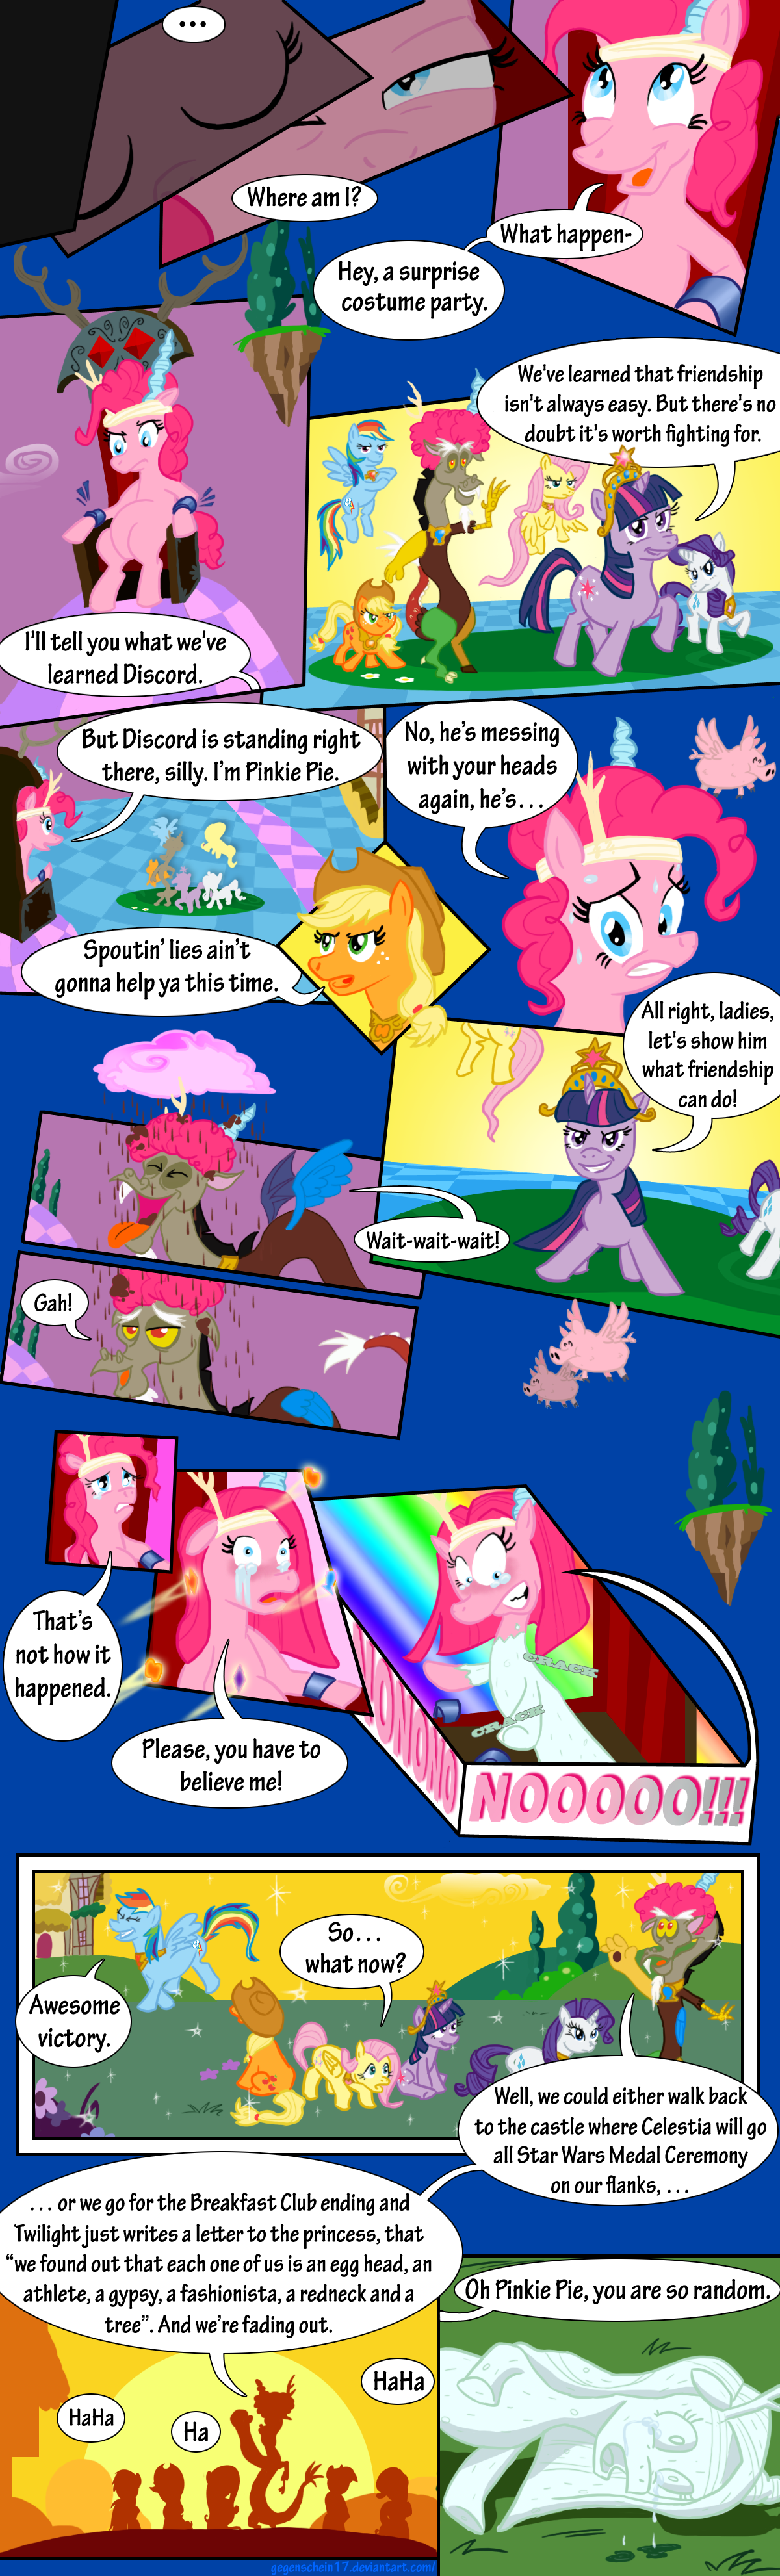 nightmare fuel my little pony friendship is magic non